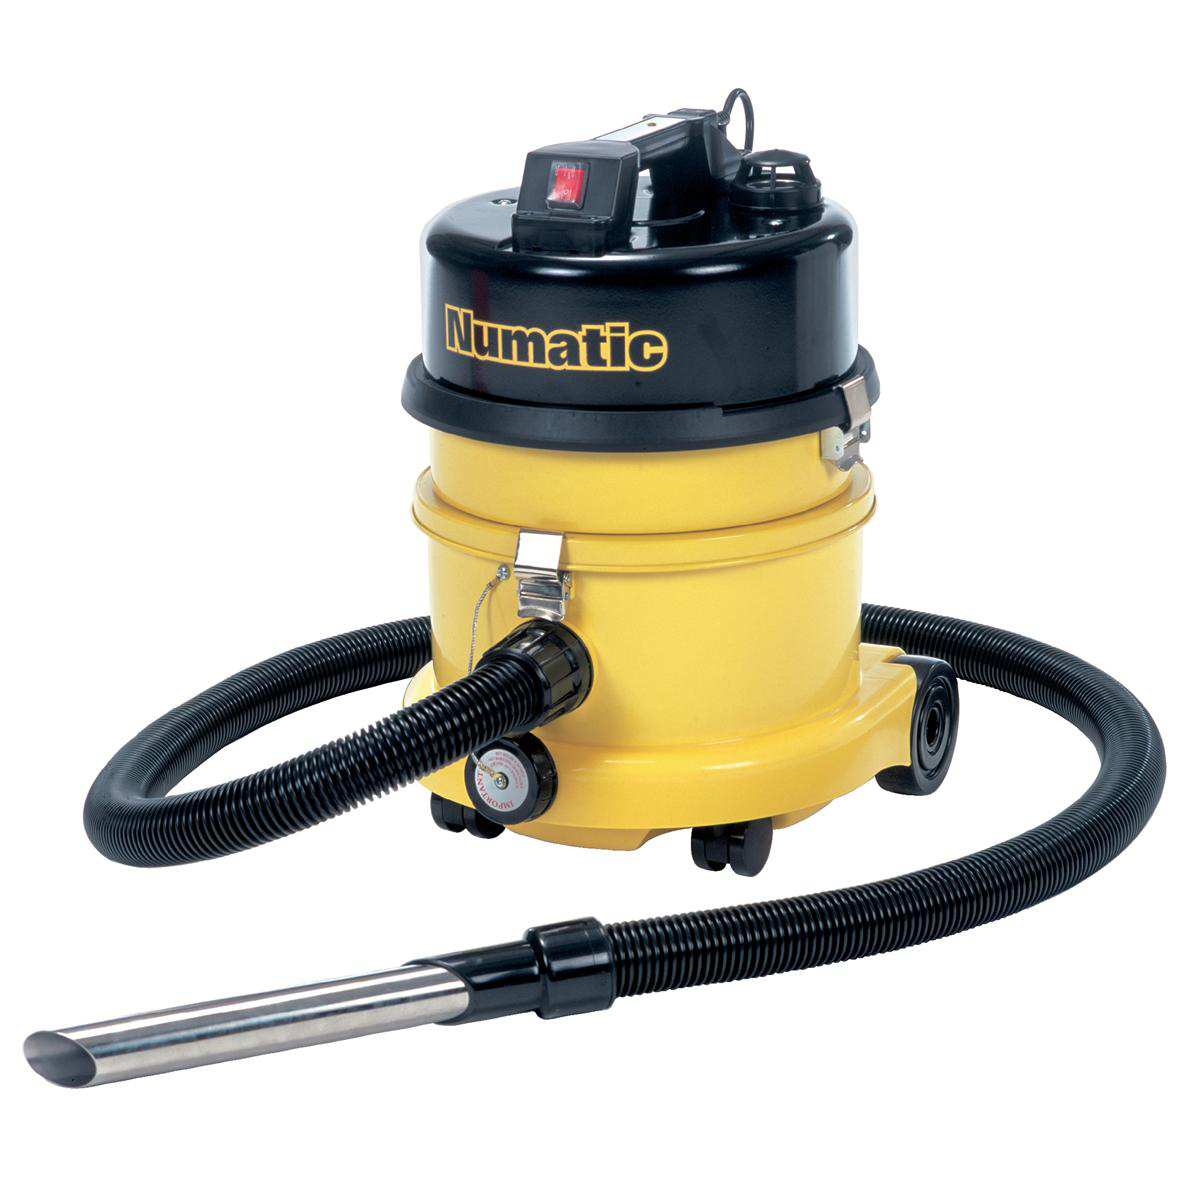 Vacuum Cleaners & Accessories Numatic Hazardous Waste Vacuum Cleaner 1200W Motor Capacity 9 Litres Accessory-kit Ref 877017